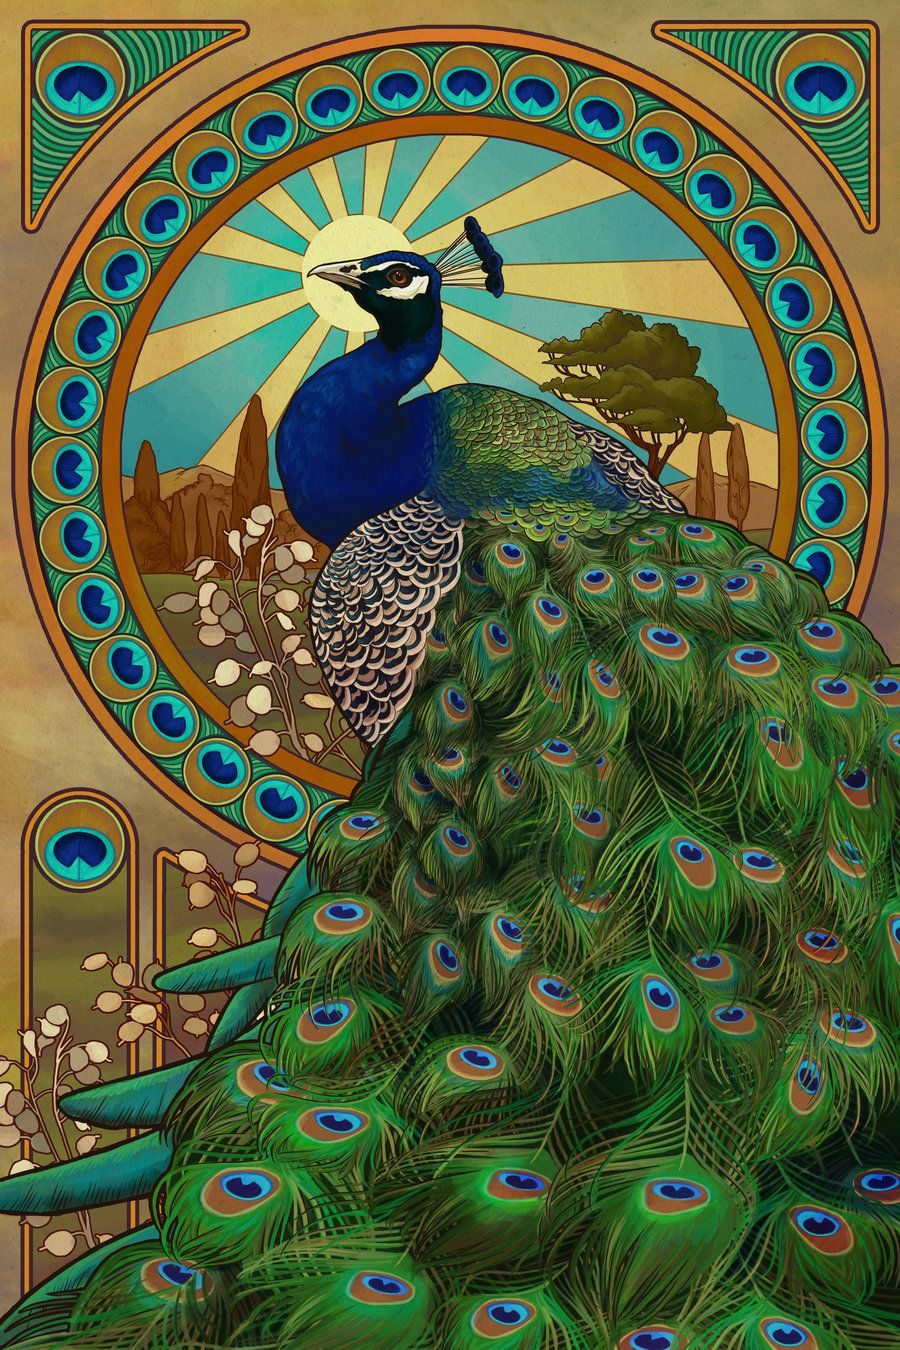 Lovely Peacock Prints for Sale